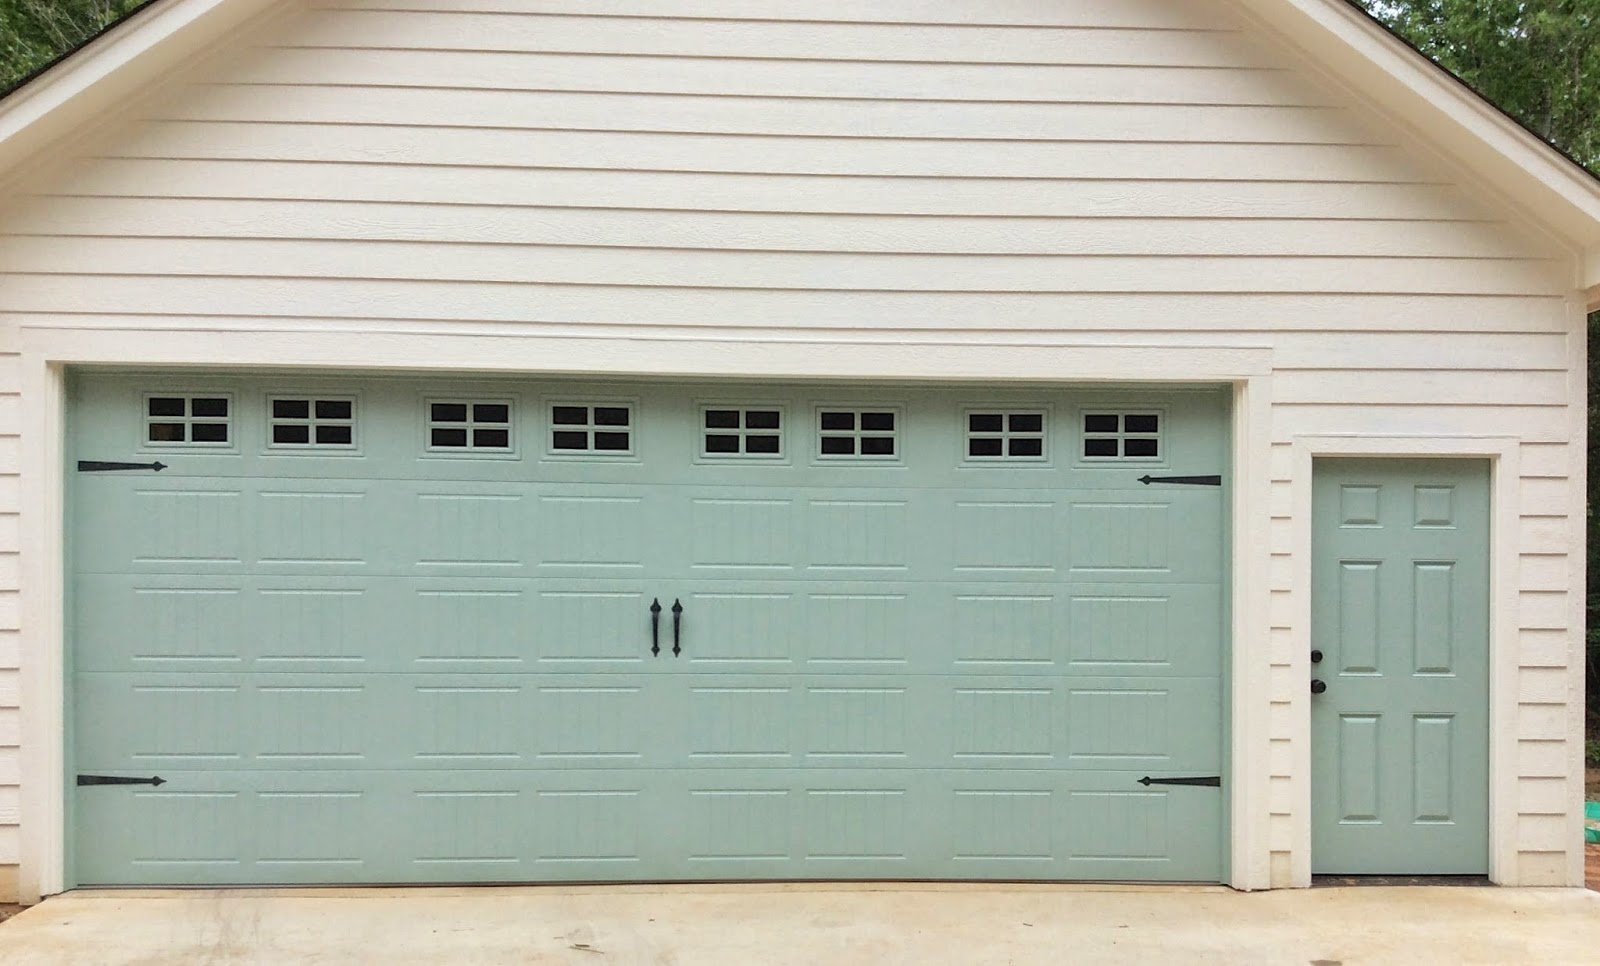 966 #4E5C3B Turqoise Garage Door Costco Made By Solid Wood With Simple Door Panel  pic Costco Doors 47611600